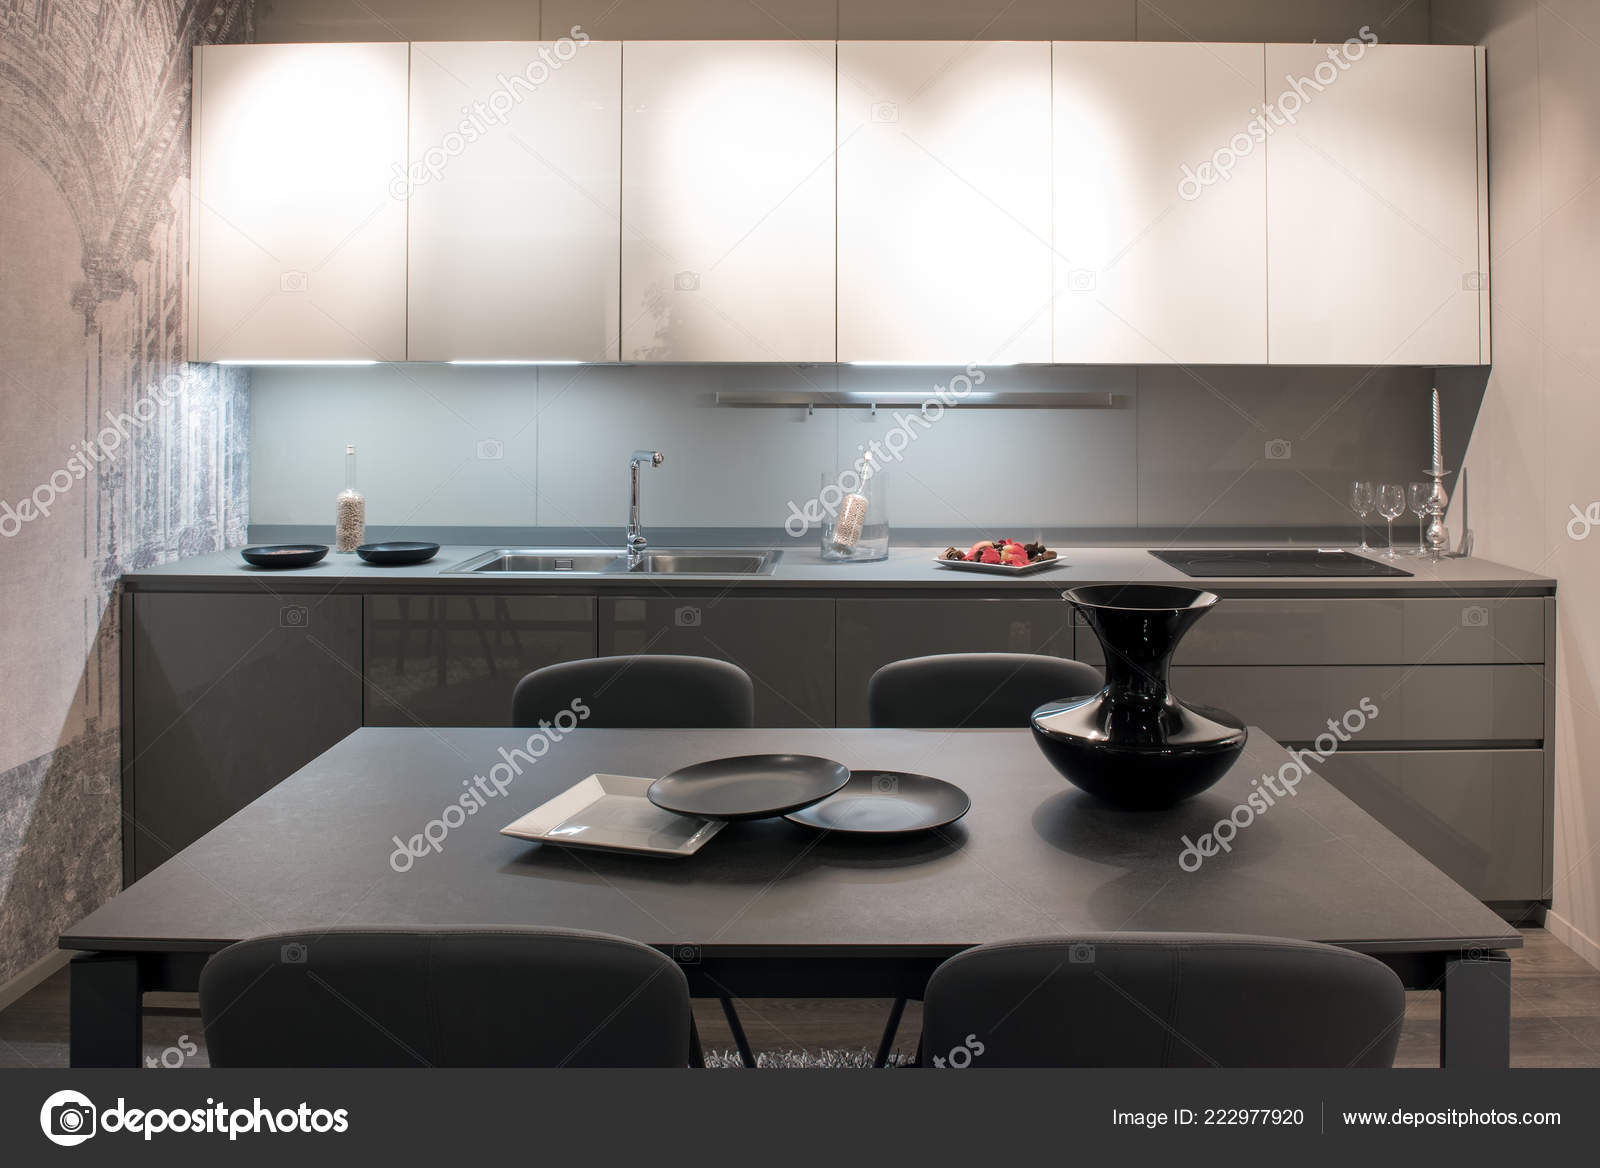 Compact Modern Grey And White Fitted Kitchen With Illuminated Cabinets A Dining Table Set Ceramics Stock Image